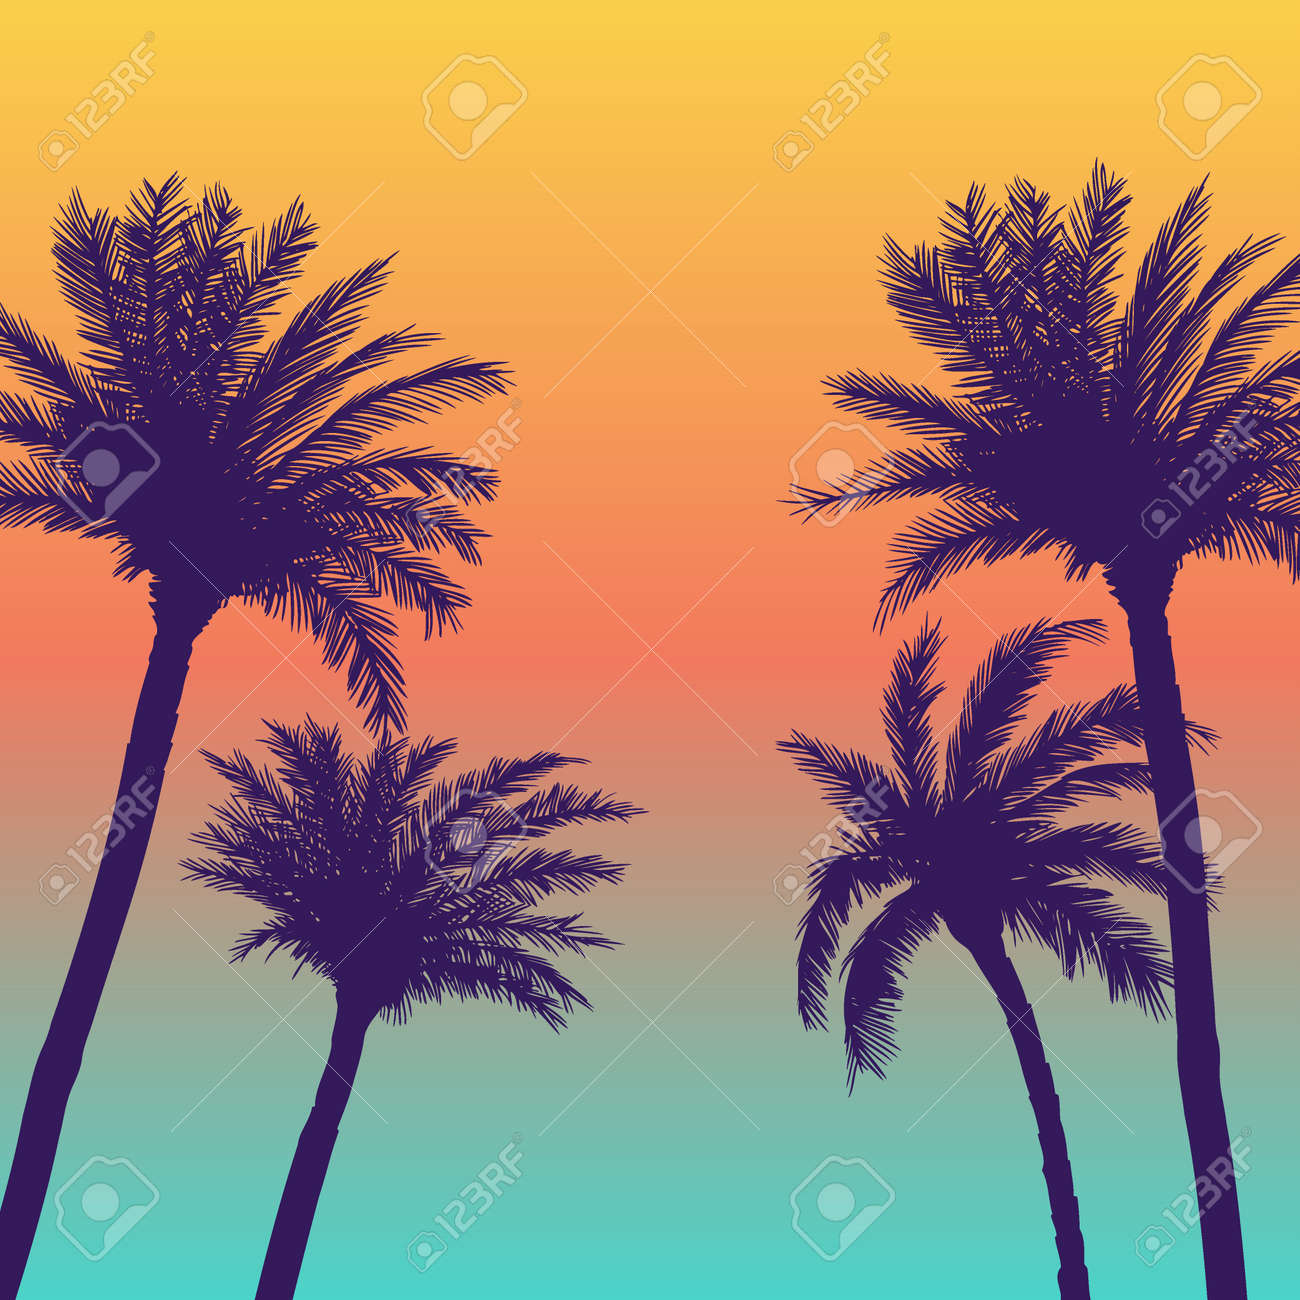 Silhouette palm coconut trees background - 168035139